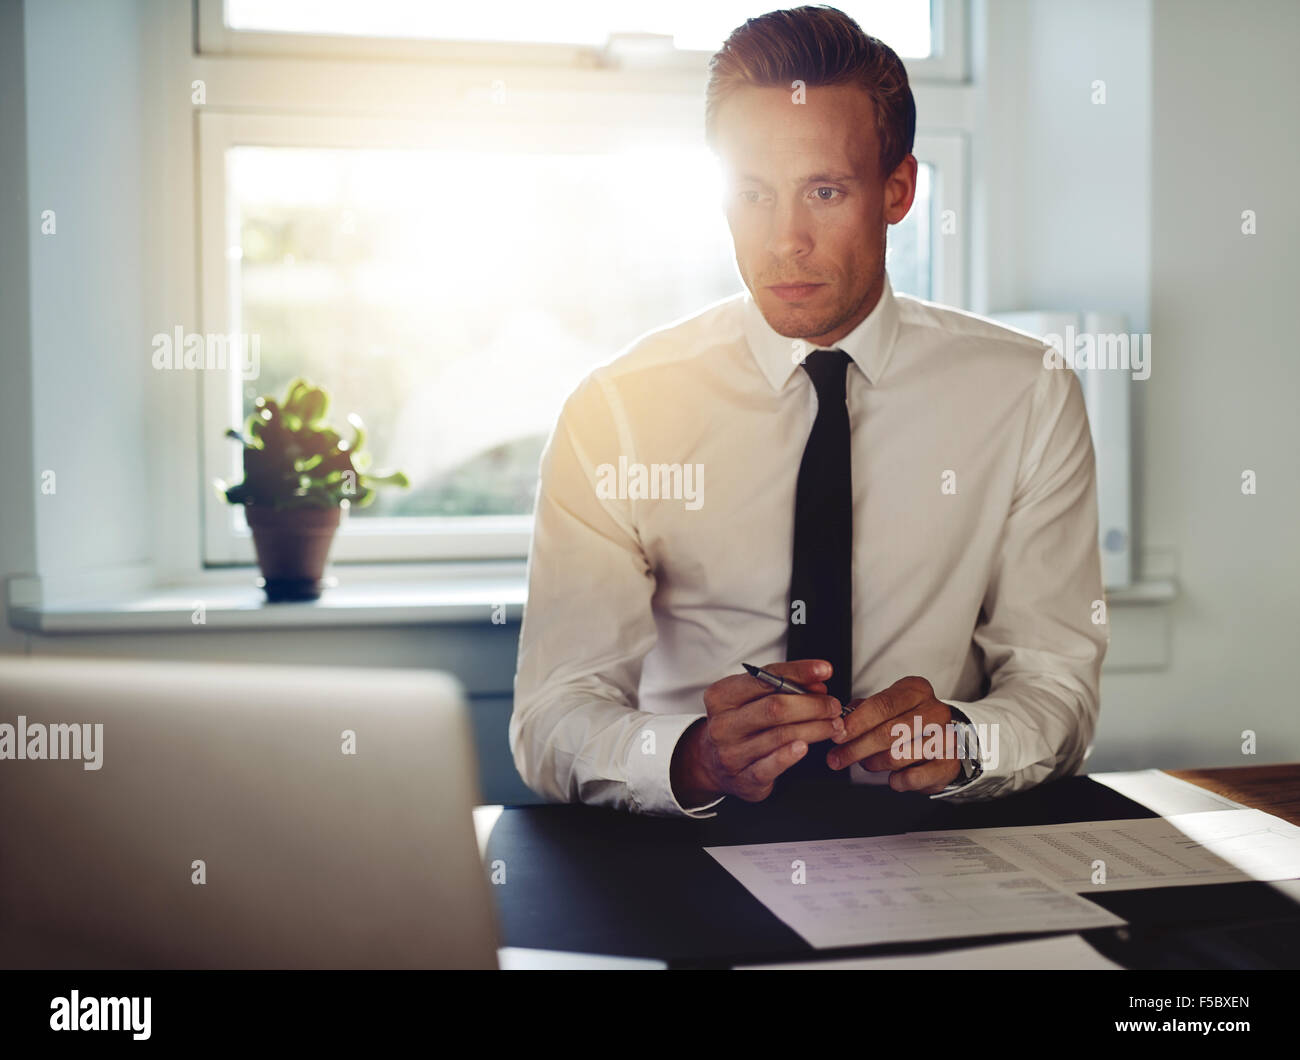 Professional business man at office working at his desk, holding a pen and looking at his laptop - Stock Image